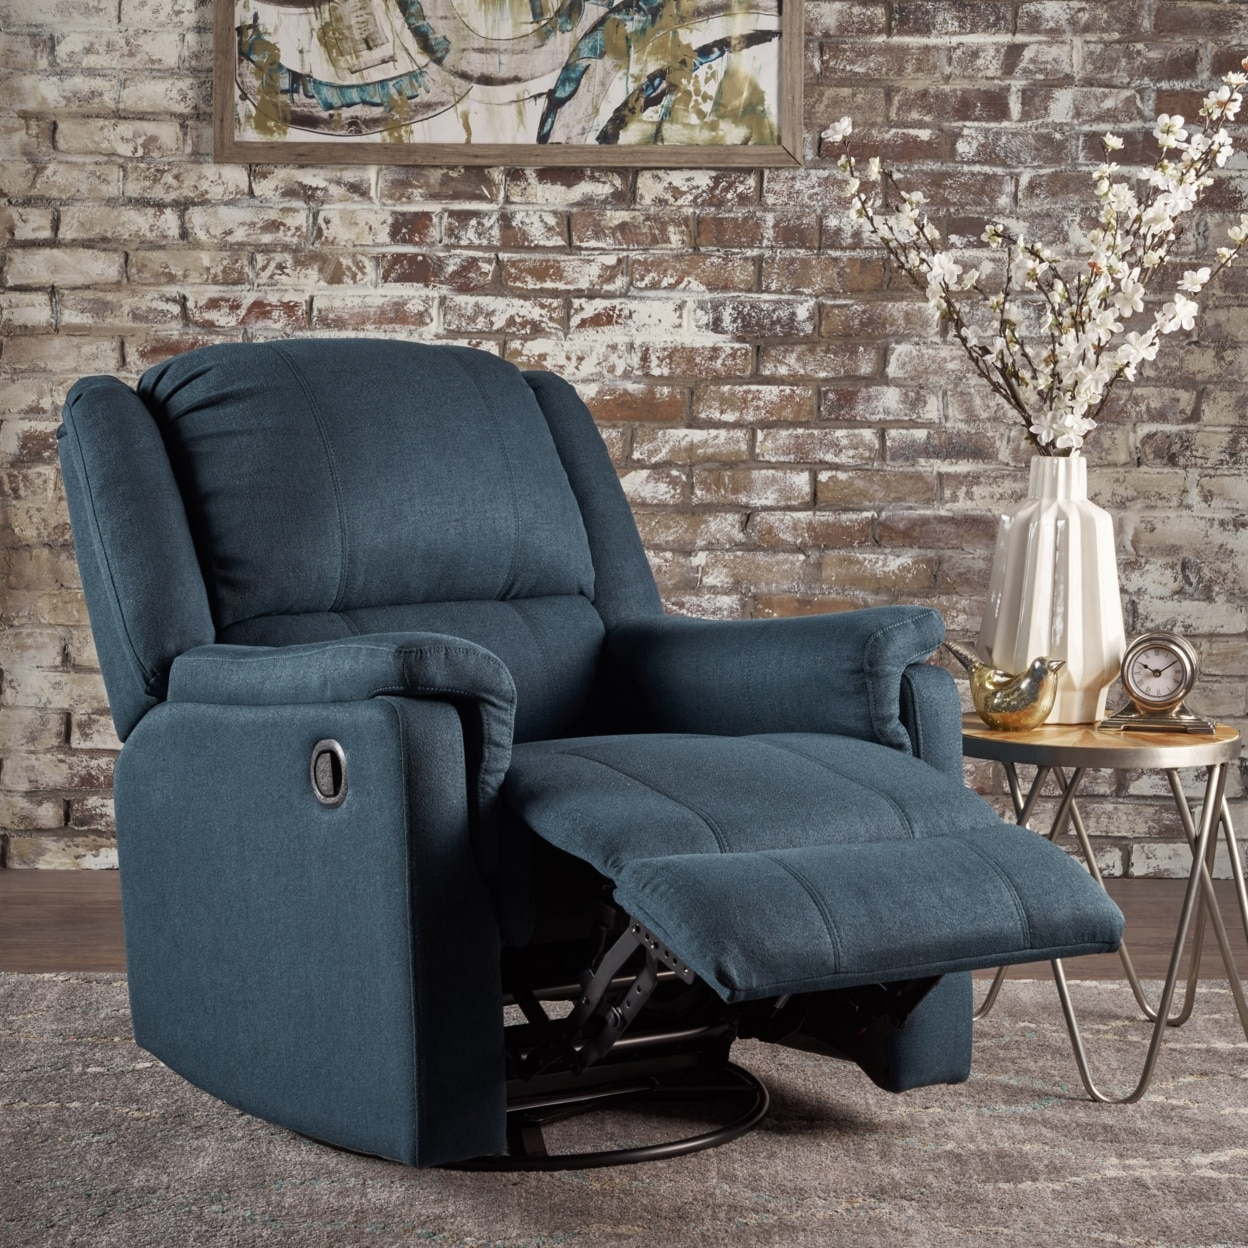 Jemma Tufted Fabric Swivel Gliding Recliner Chair In Living Room Intended For Decker Ii Fabric Swivel Rocker Recliners (Image 10 of 25)